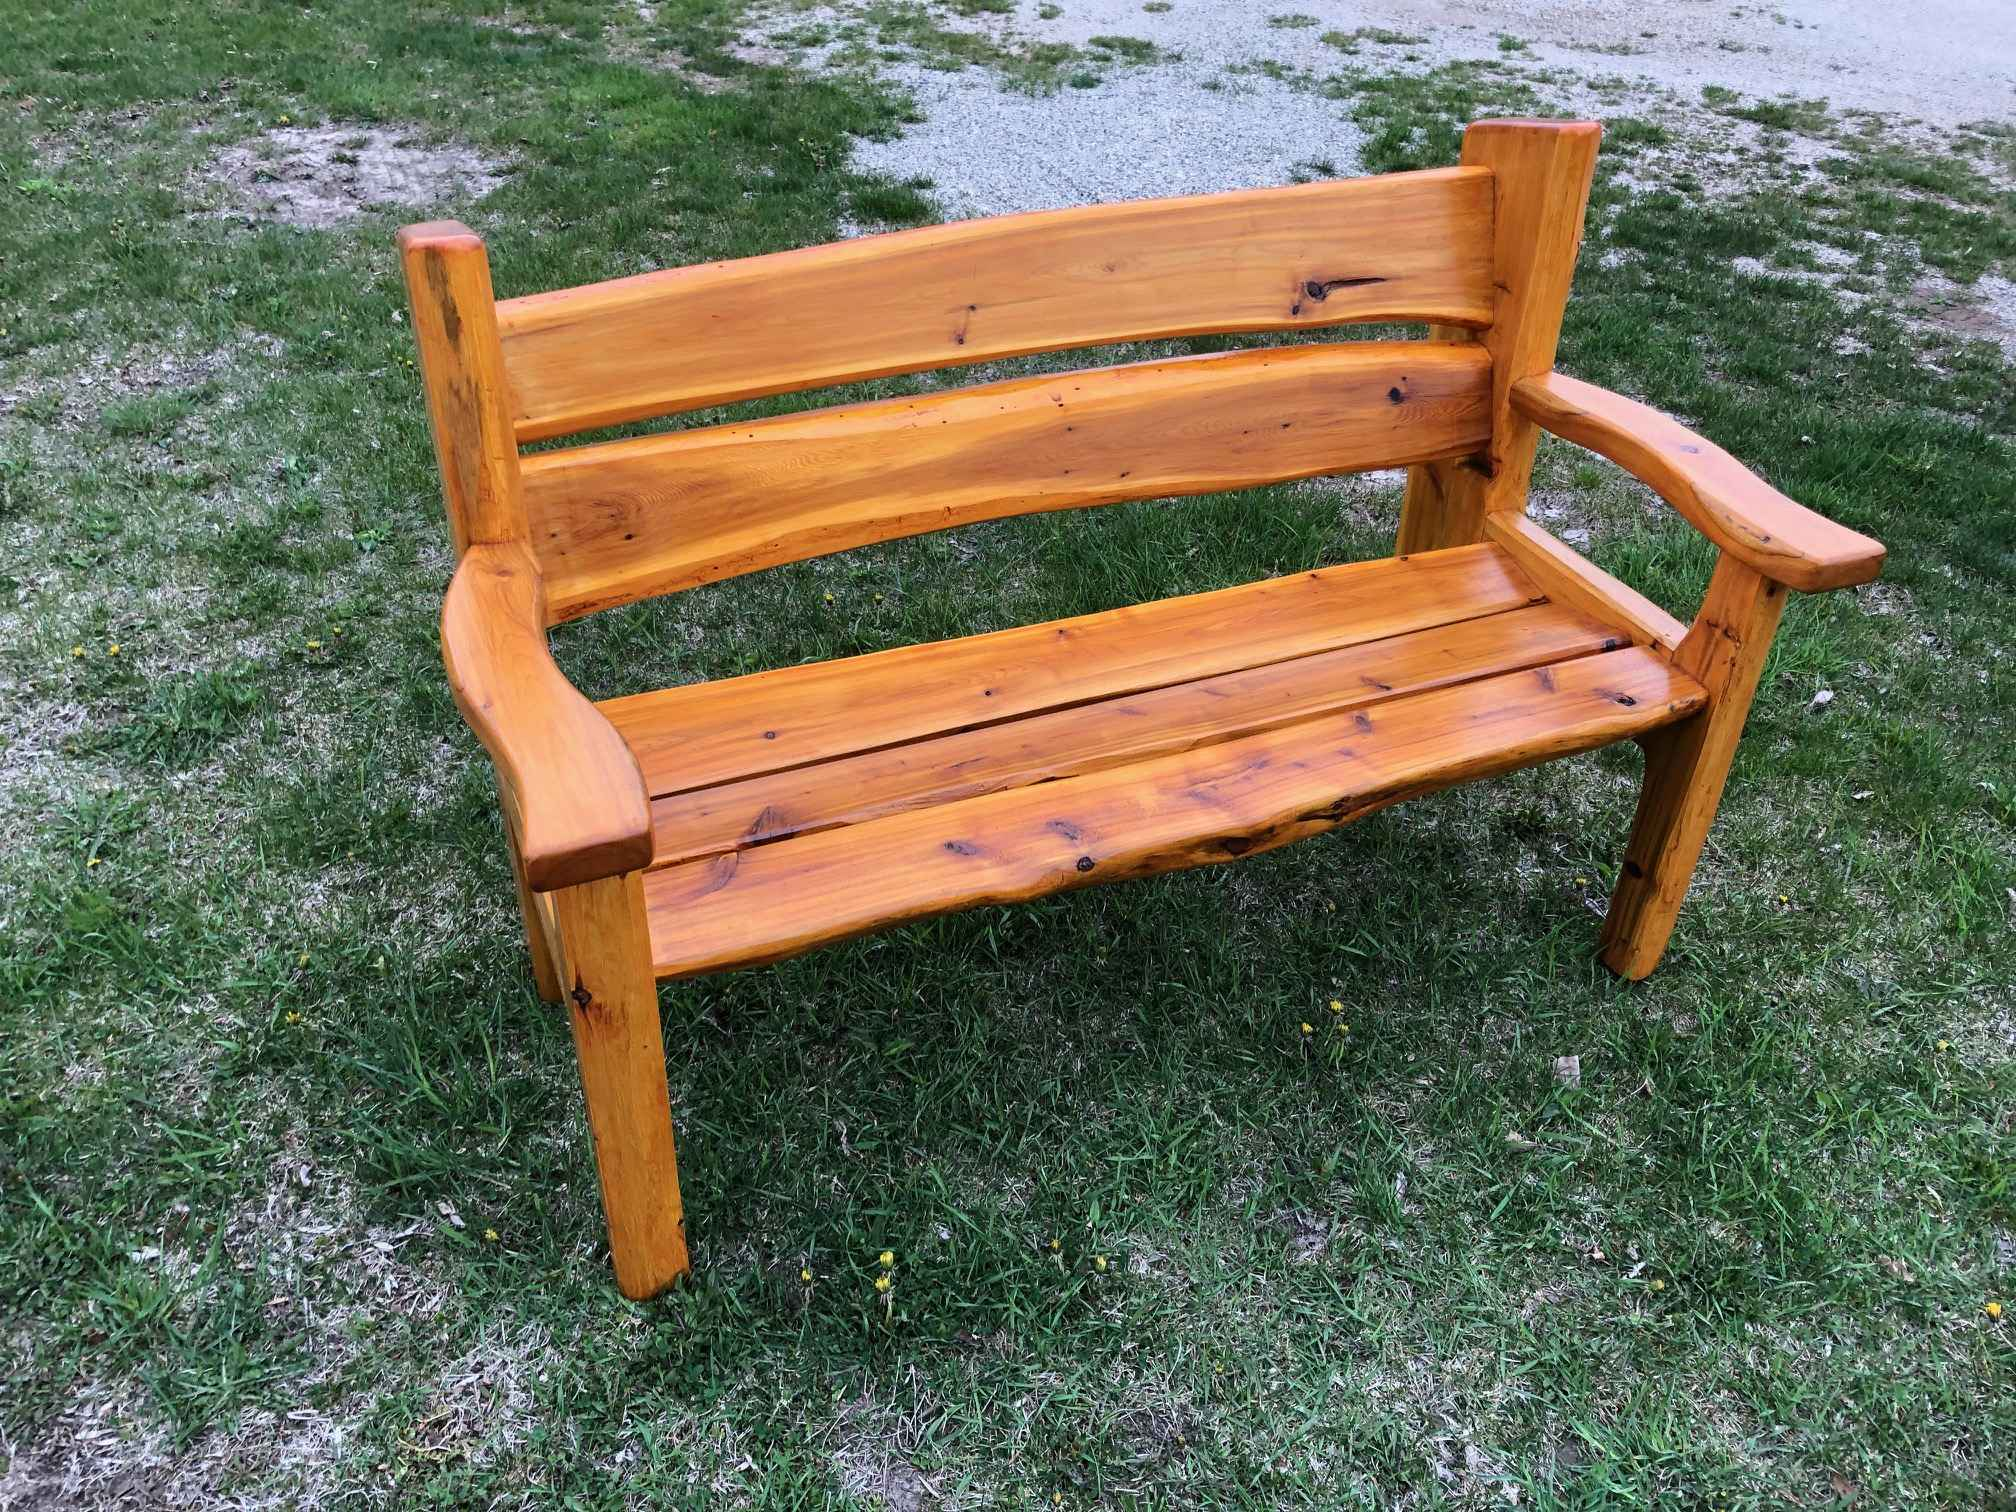 Garden Bench with Arm Rests, 4' Long